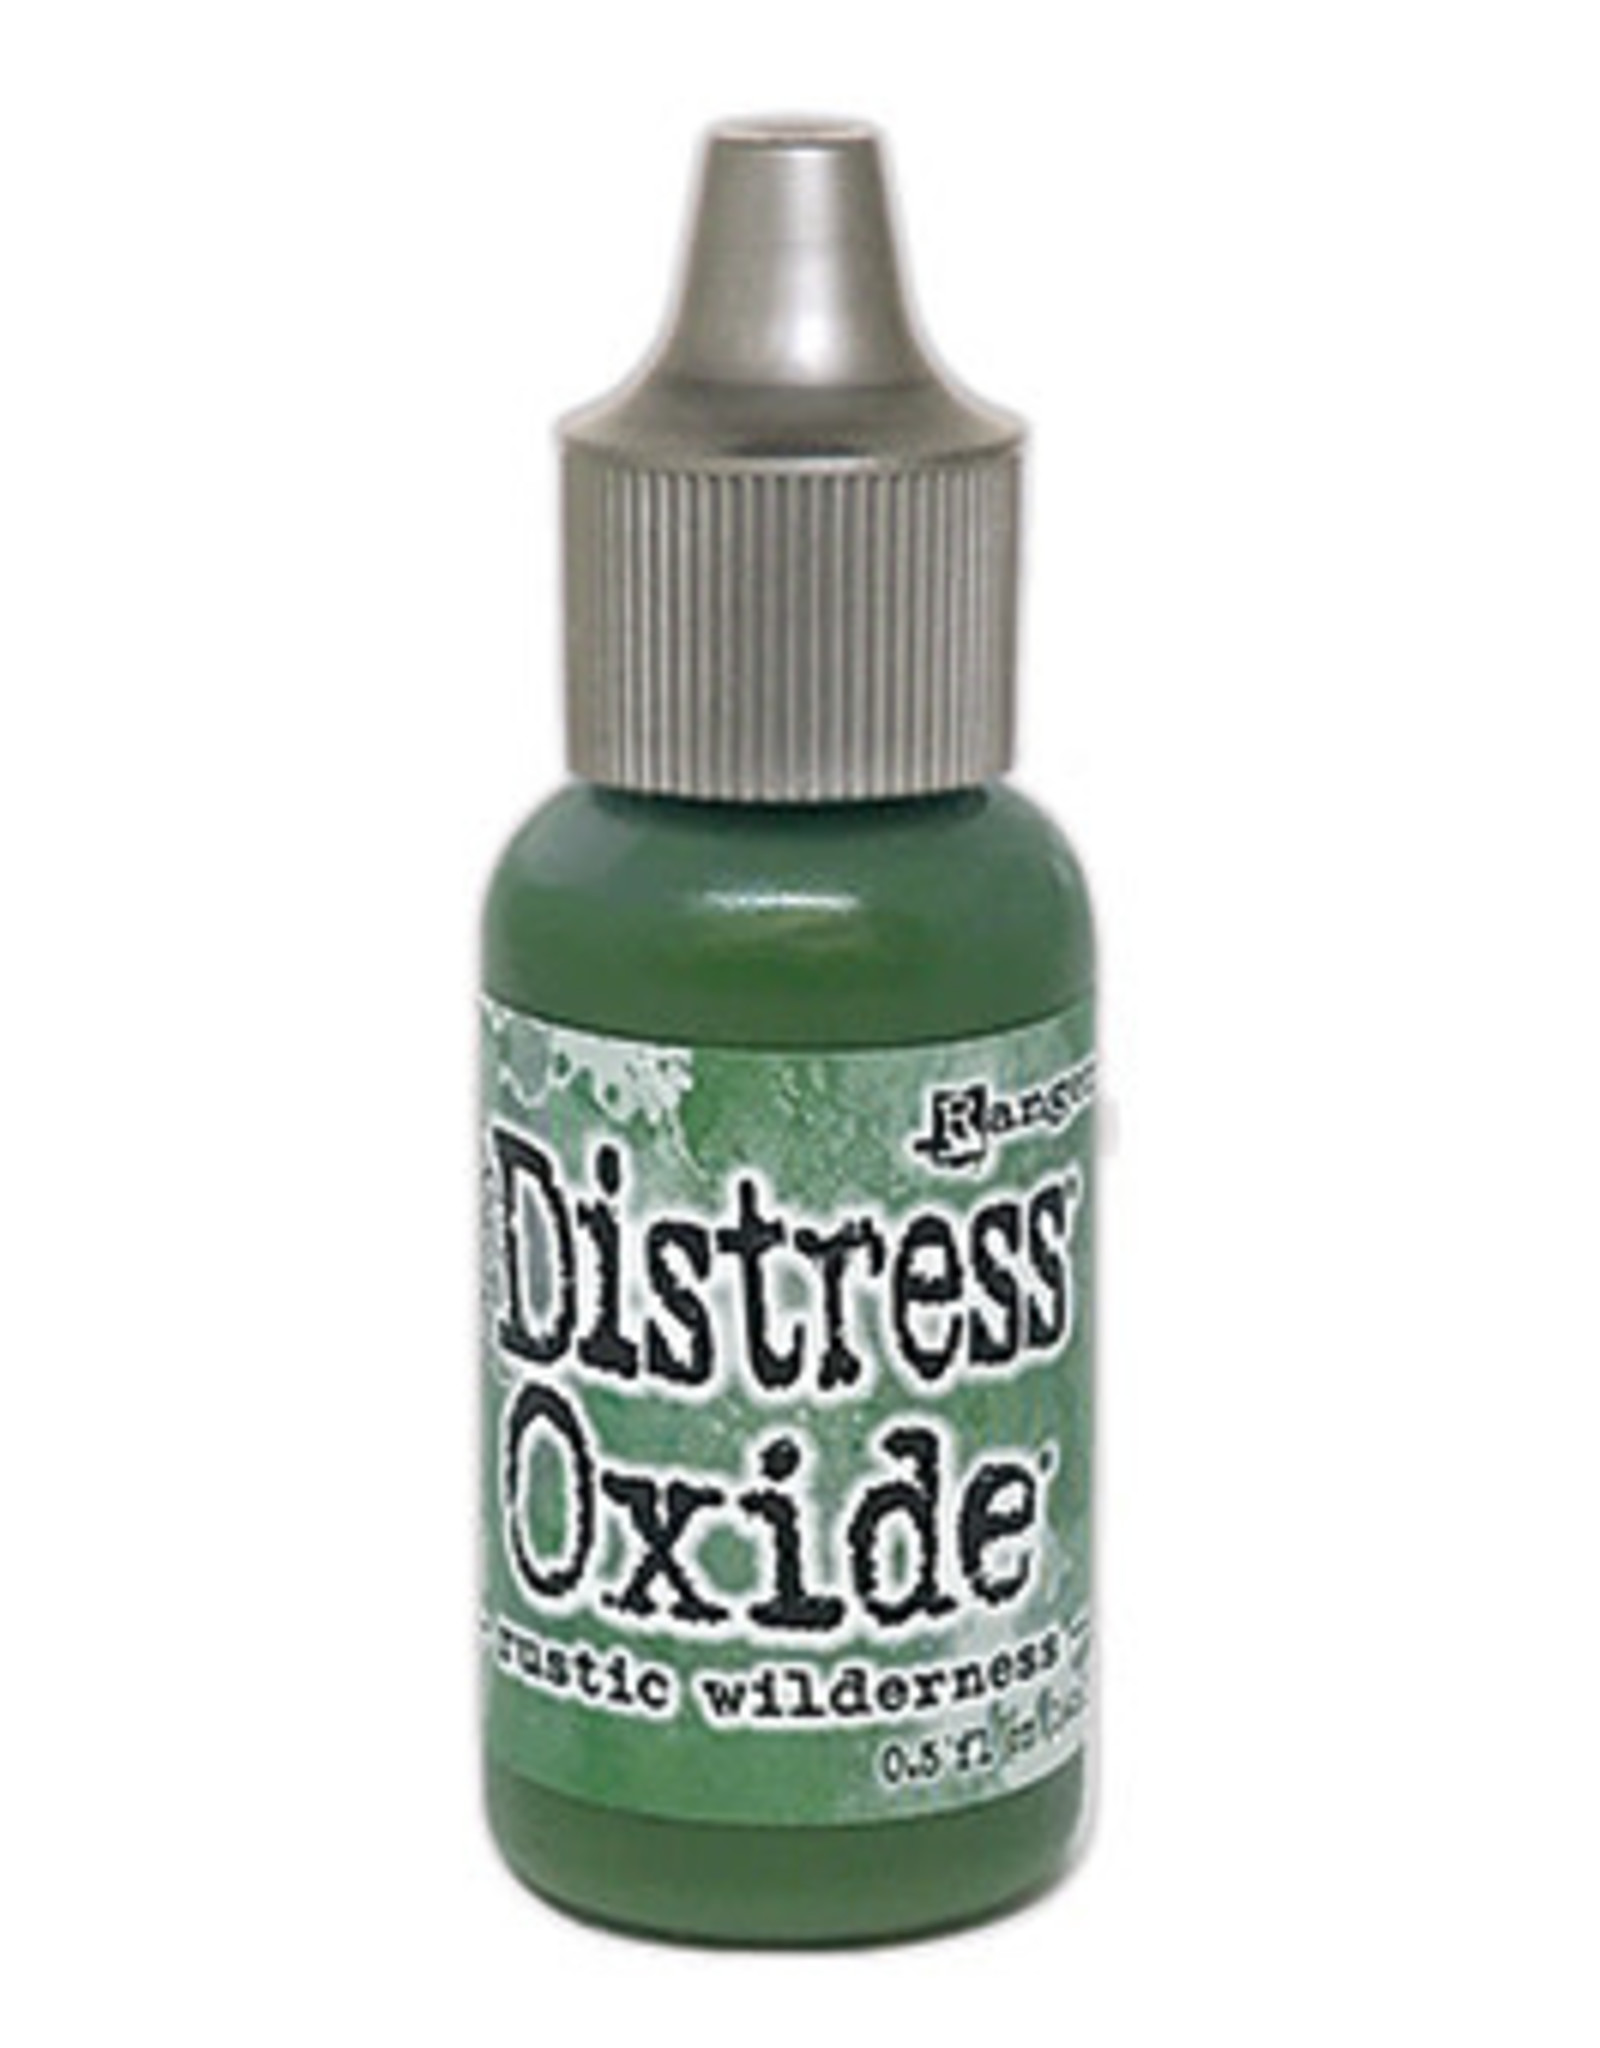 Ranger Ranger Distress Oxide Re-Inker 14 ml - Rustic Wilderness Tim Holtz